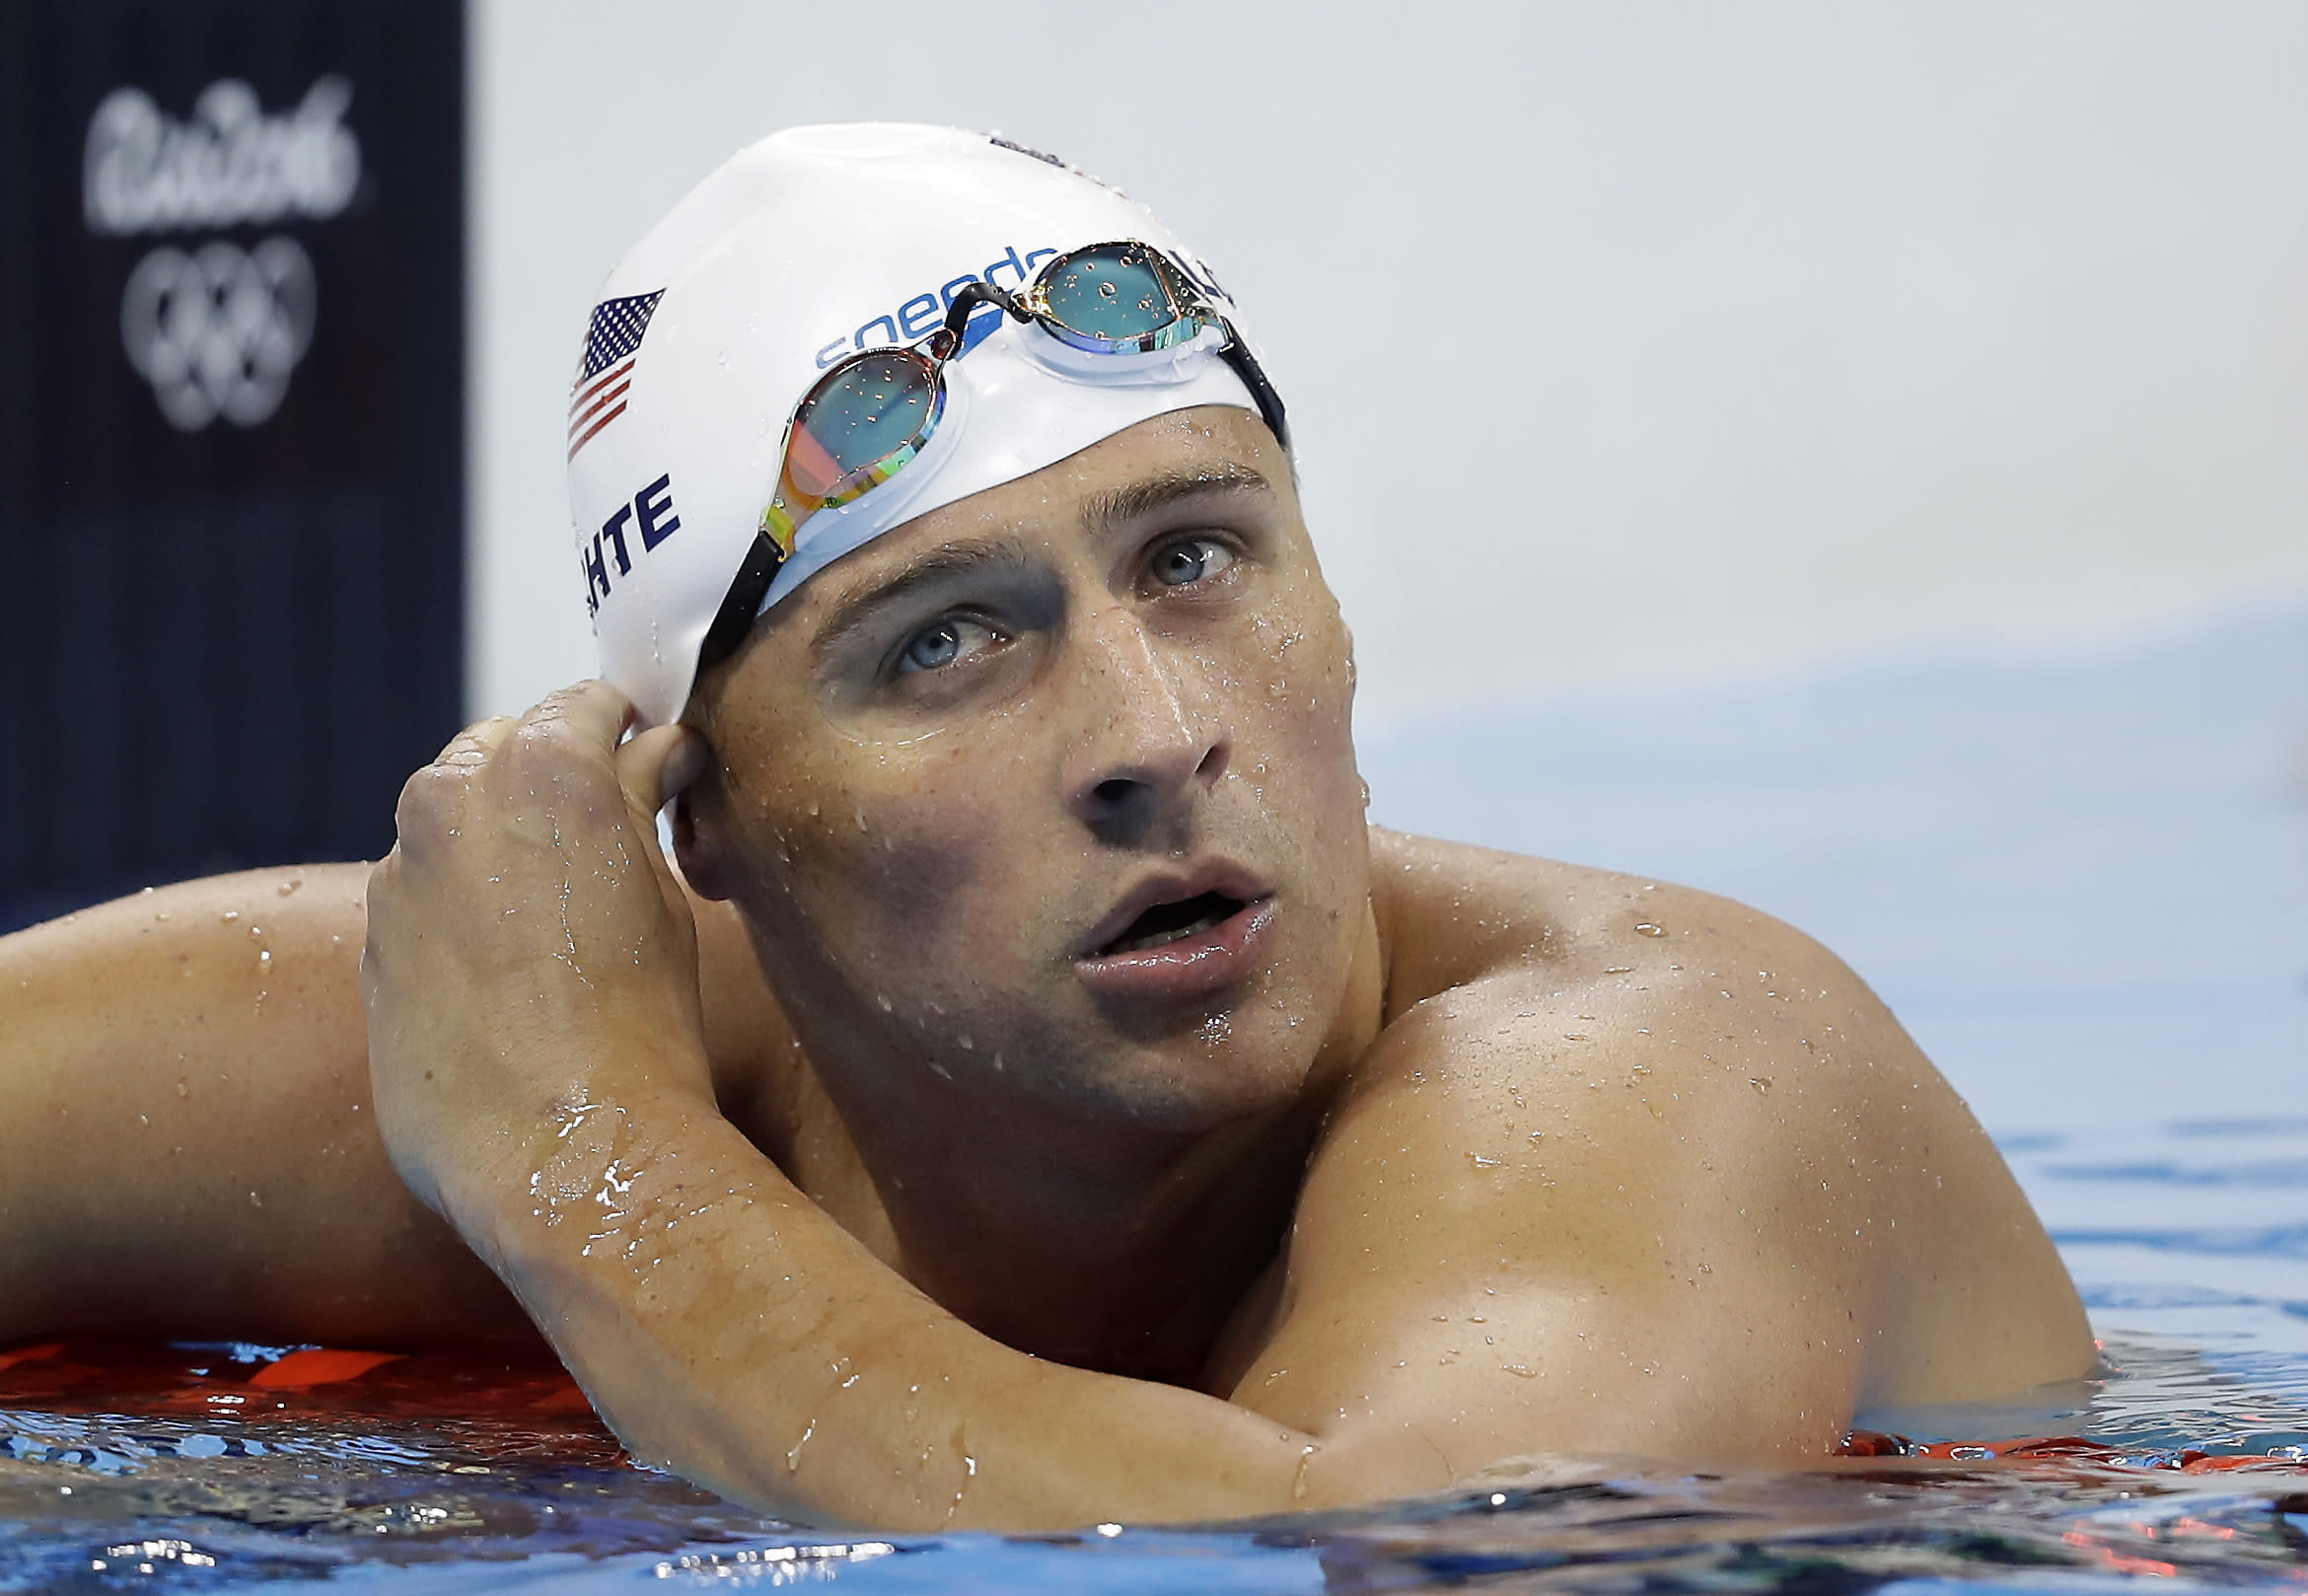 Social media post leads U.S. Anti-Doping Agency to suspend Ryan Lochte for 14 months